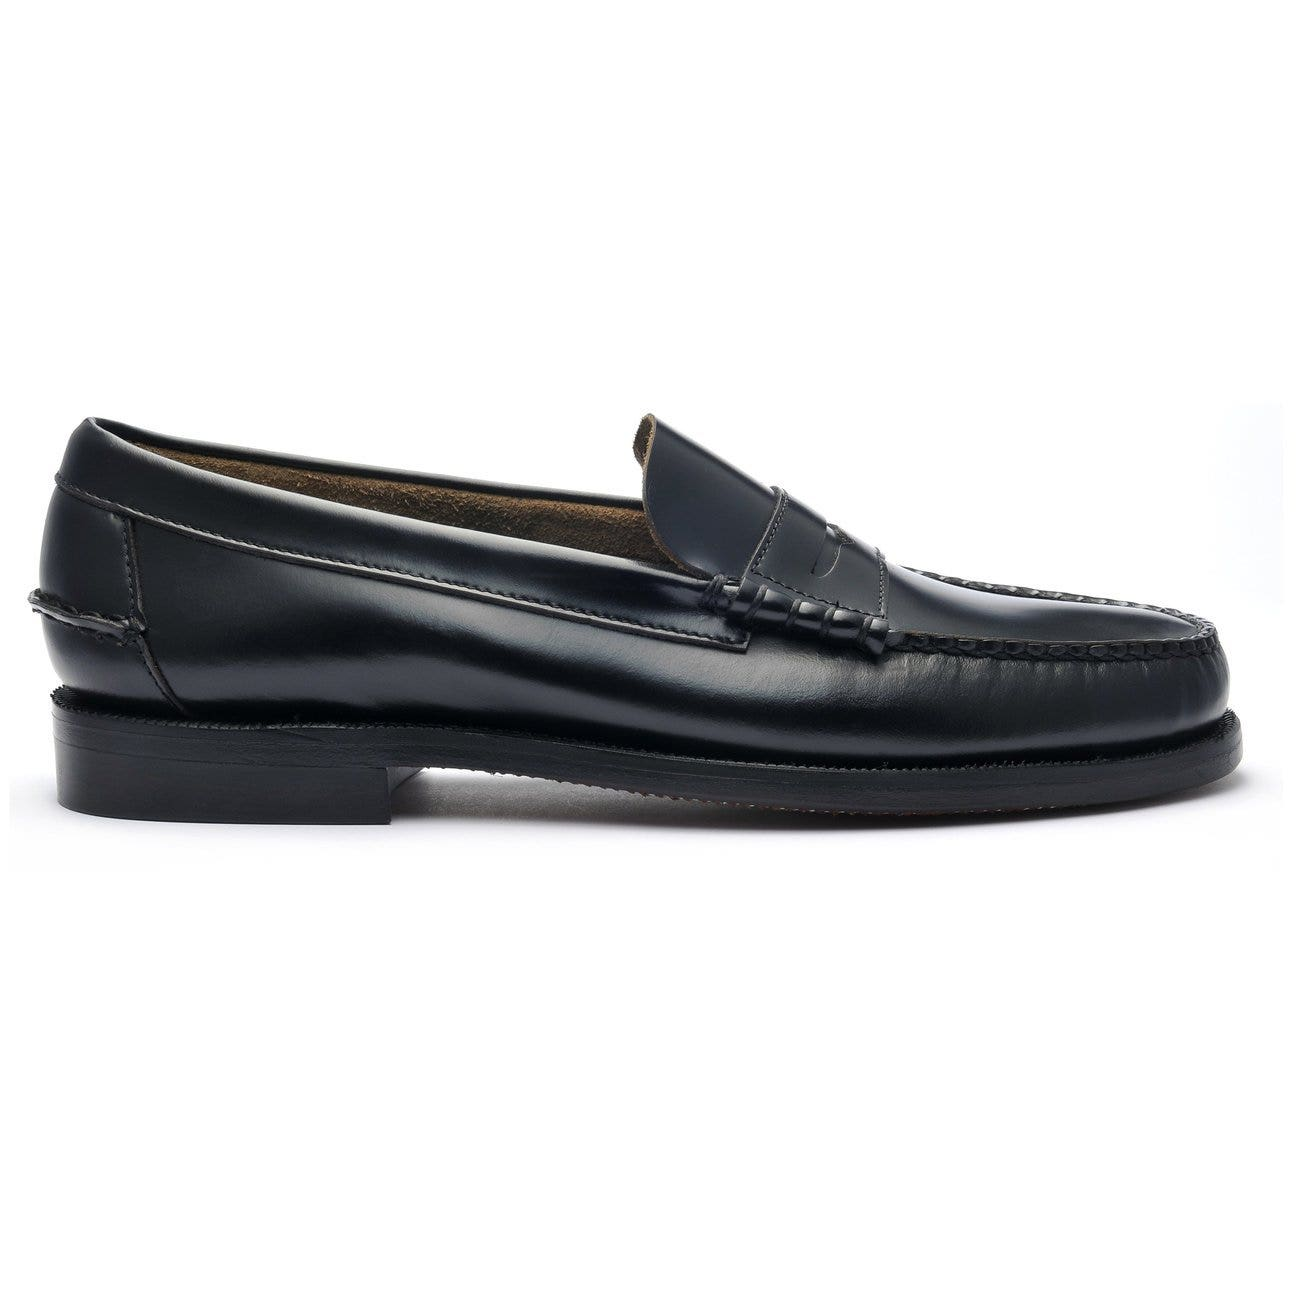 Dan Black Loafer